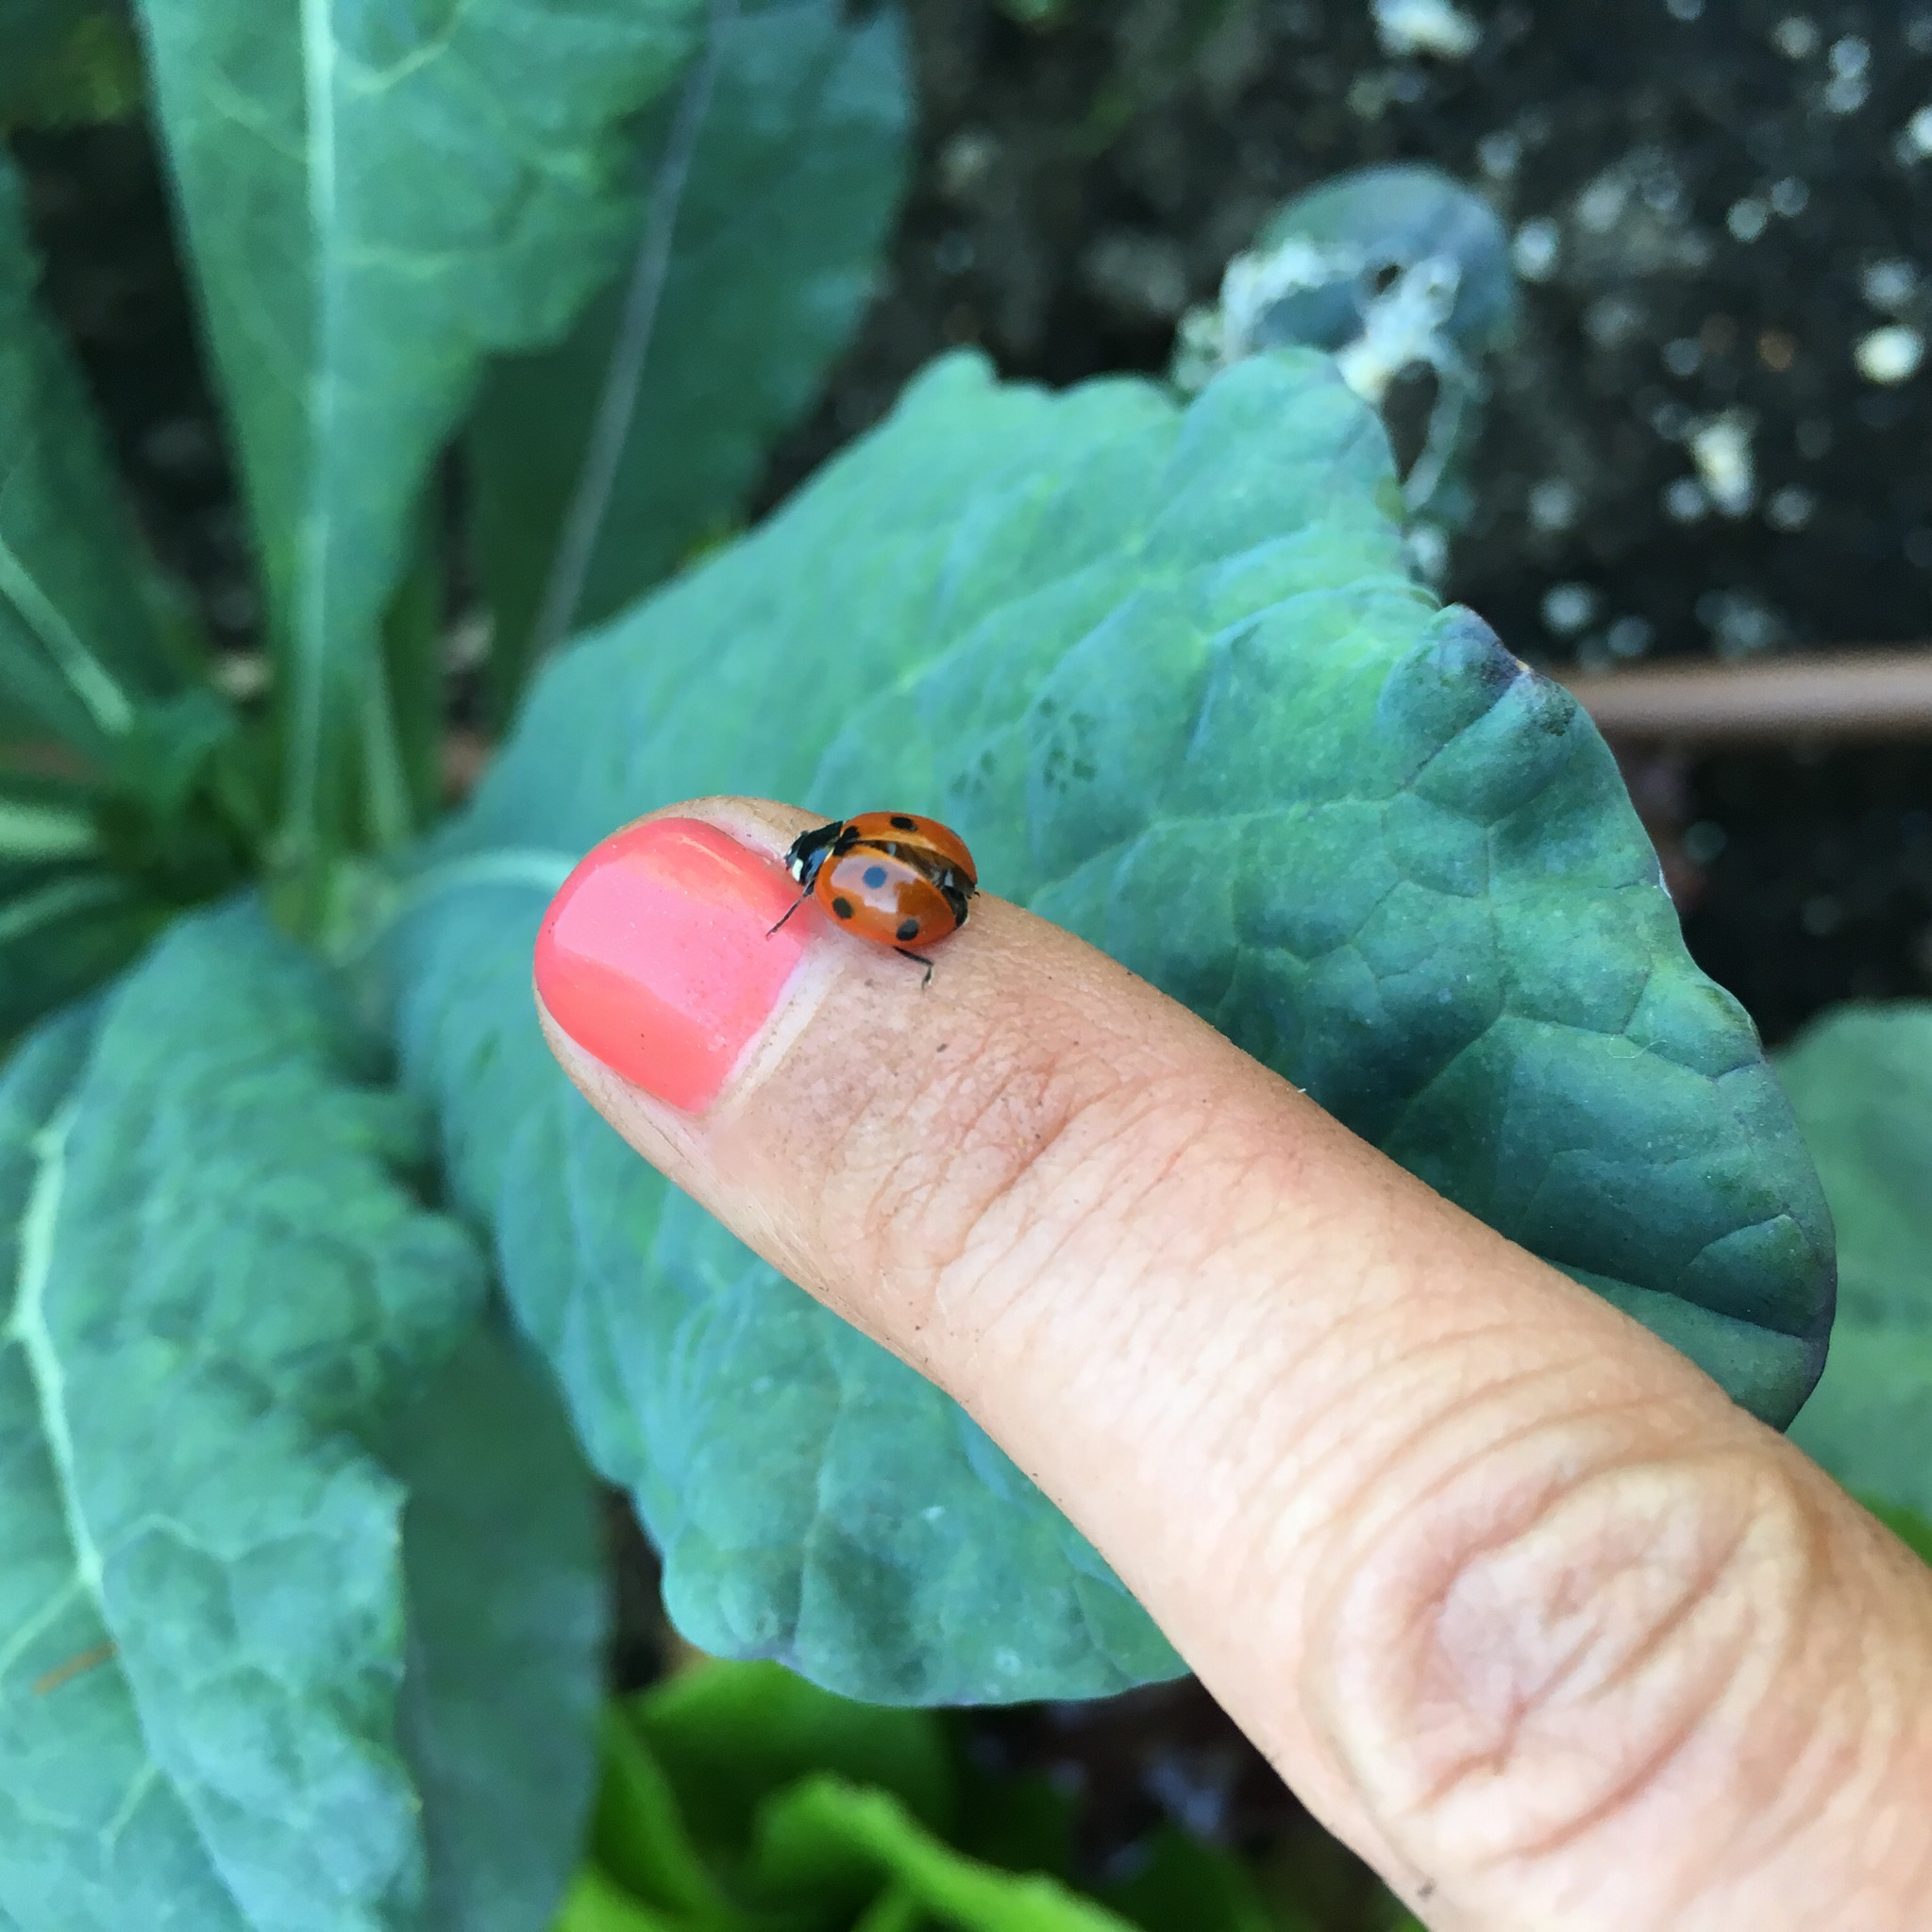 Beneficial insects like lady bugs have made a strong showing this month